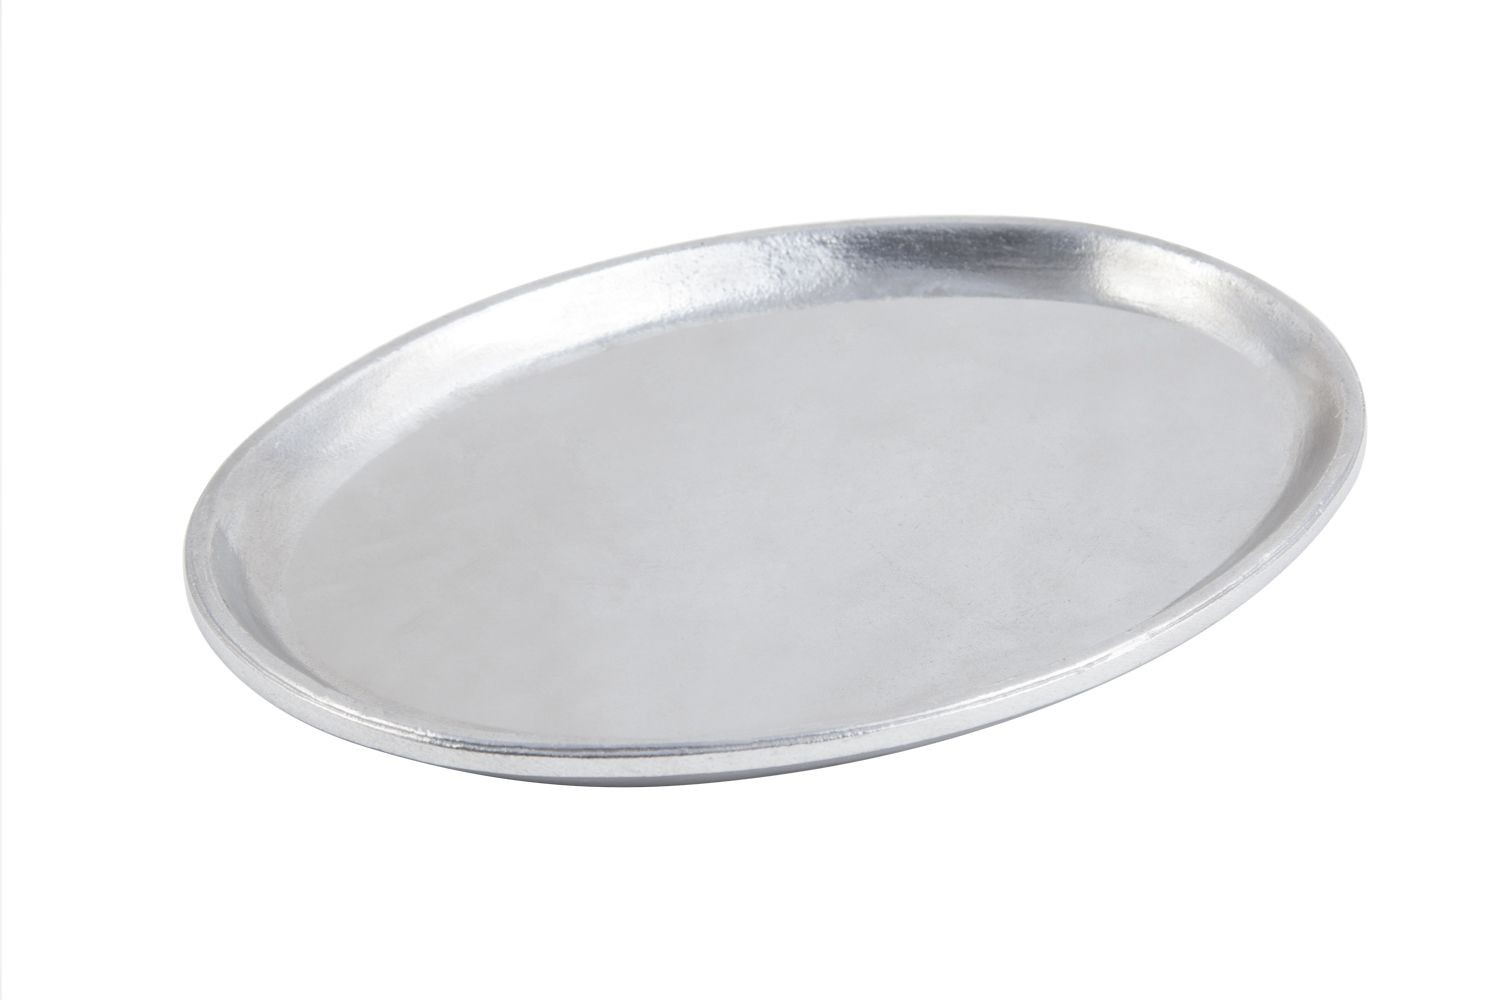 "Bon Chef 2060P Extra Heavy Oval Platter, Pewter Glo 7 1/2"" x 10"", Set of 6"